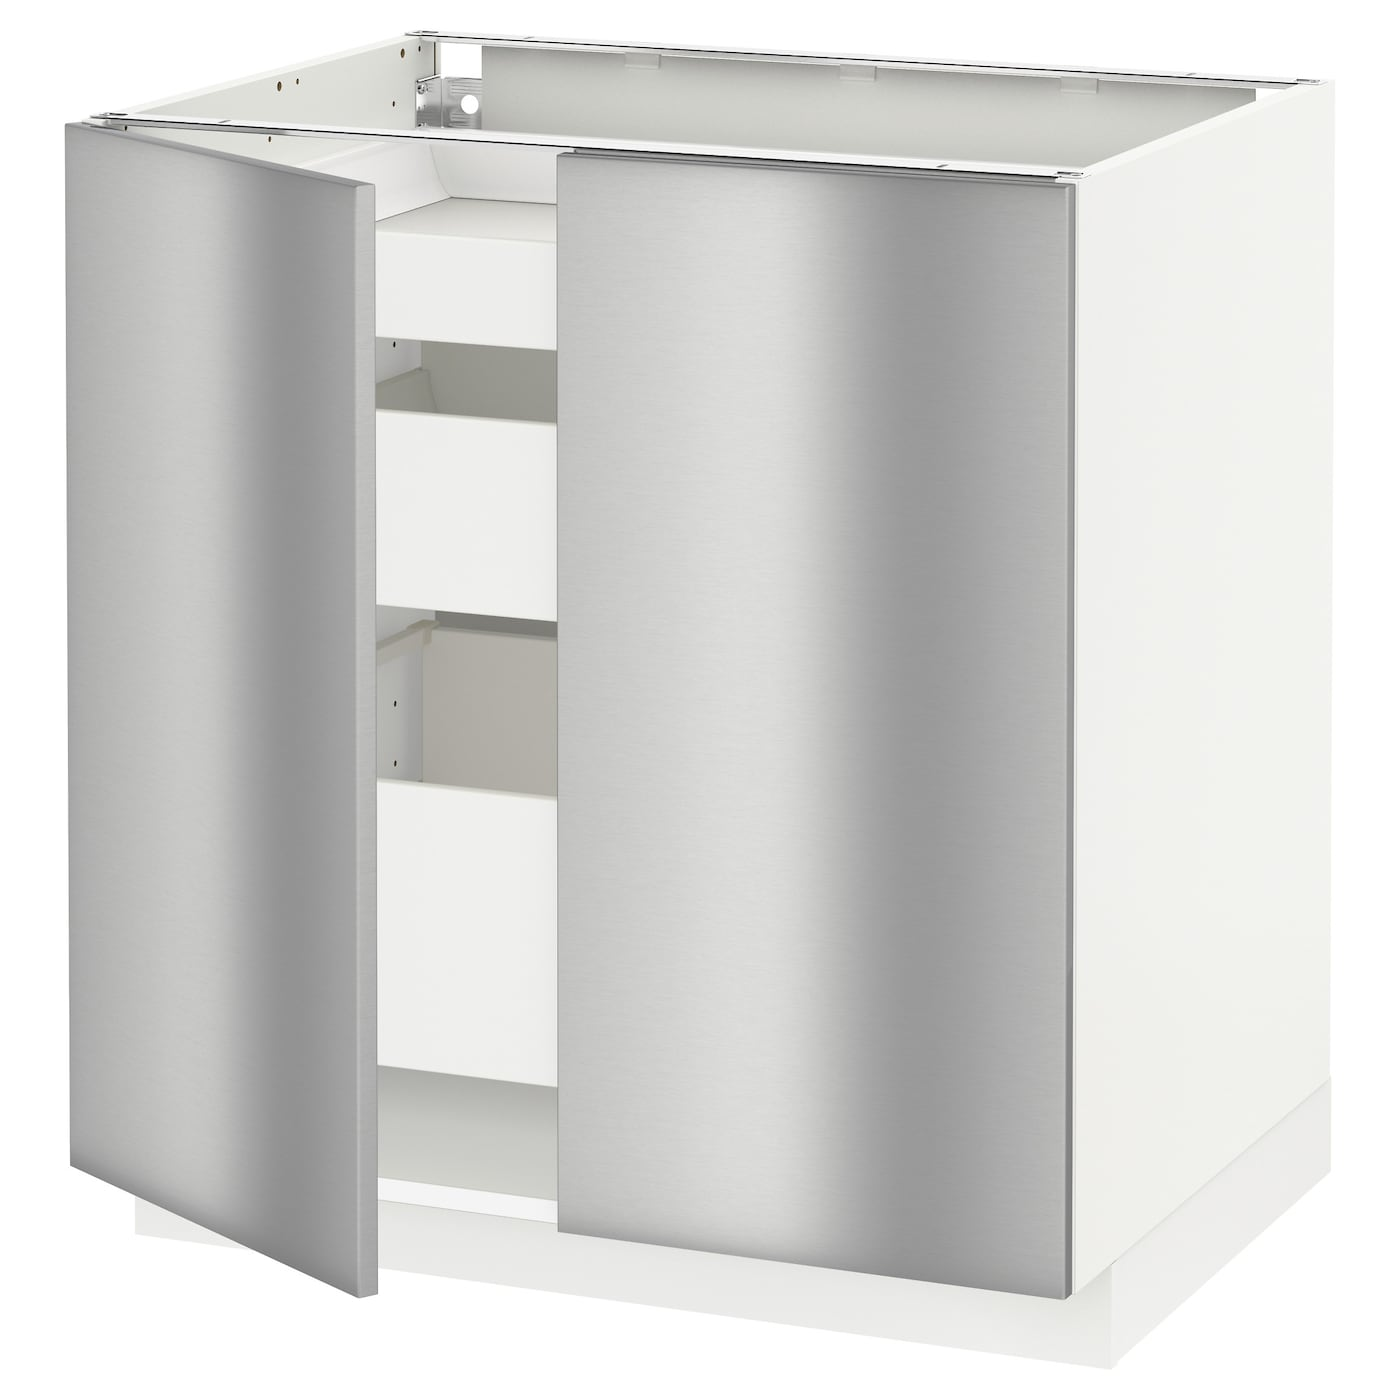 Kitchen White Cabinets Stainless: METOD/MAXIMERA Base Cabinet W 2 Doors/3 Drawers White